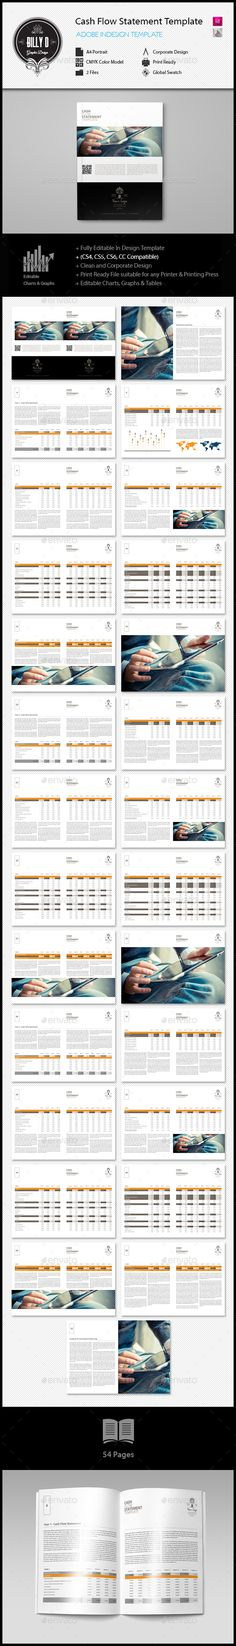 Cash Flow Statement Digital Template u2013 Keboto Templates - cash flow statement template